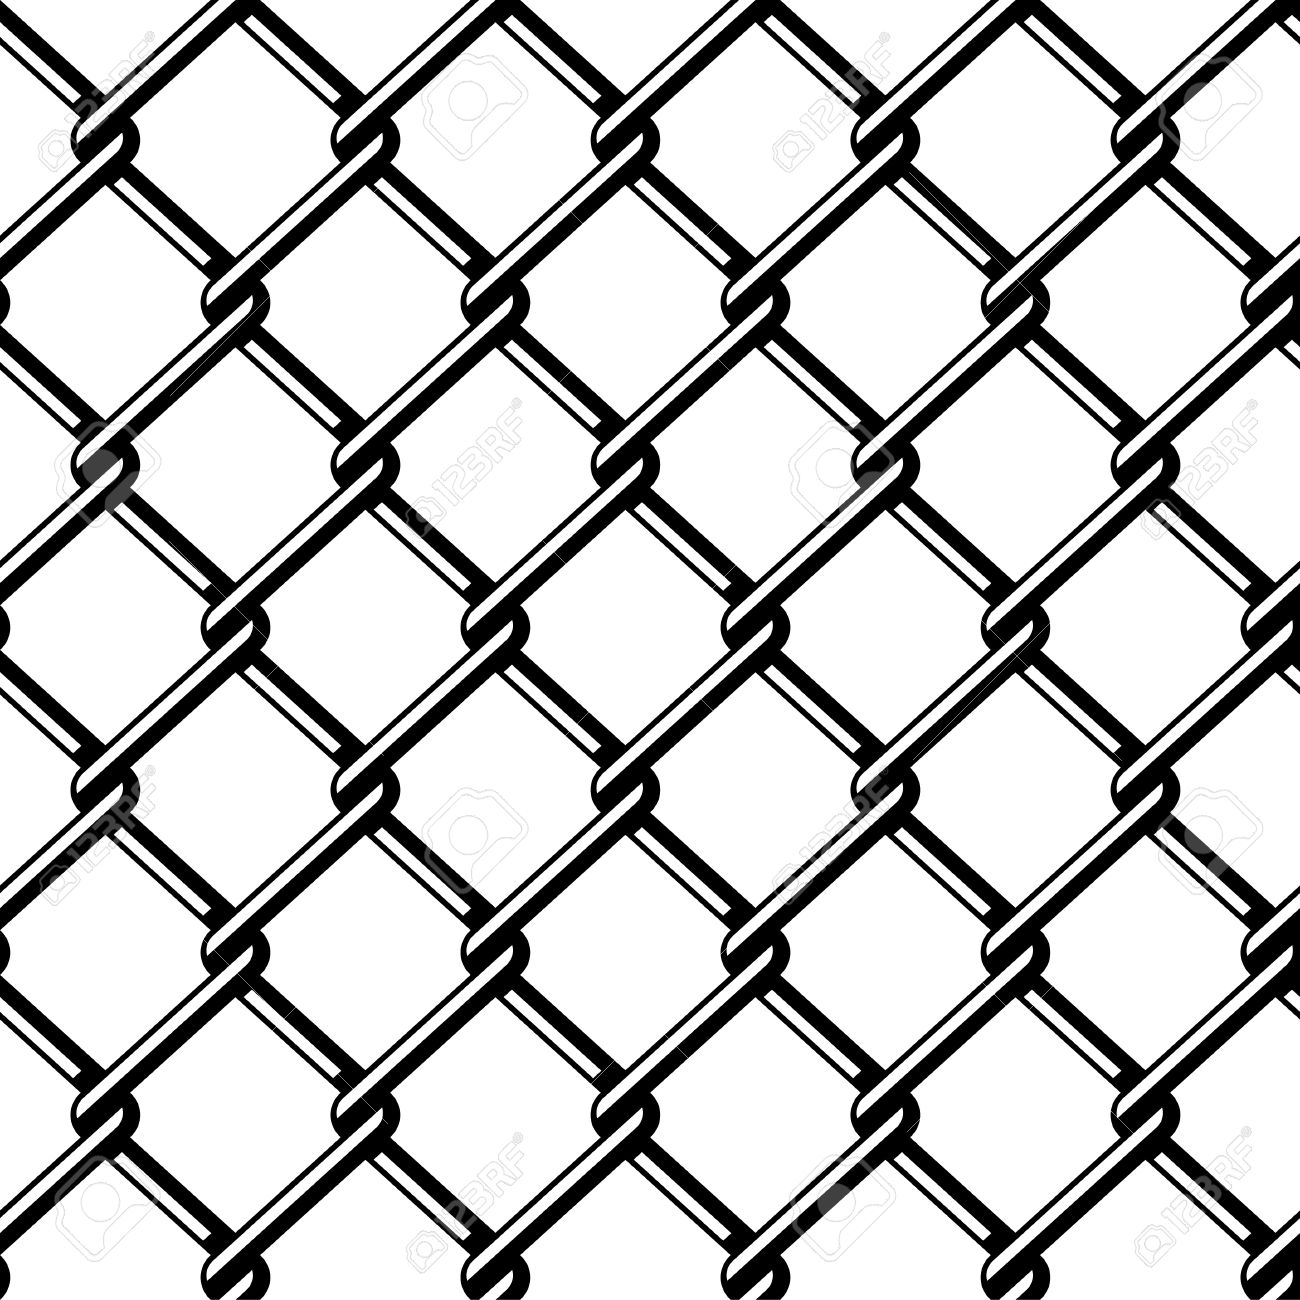 1300x1300 Vector Wire Fence Seamless Black Silhouette Royalty Free Cliparts